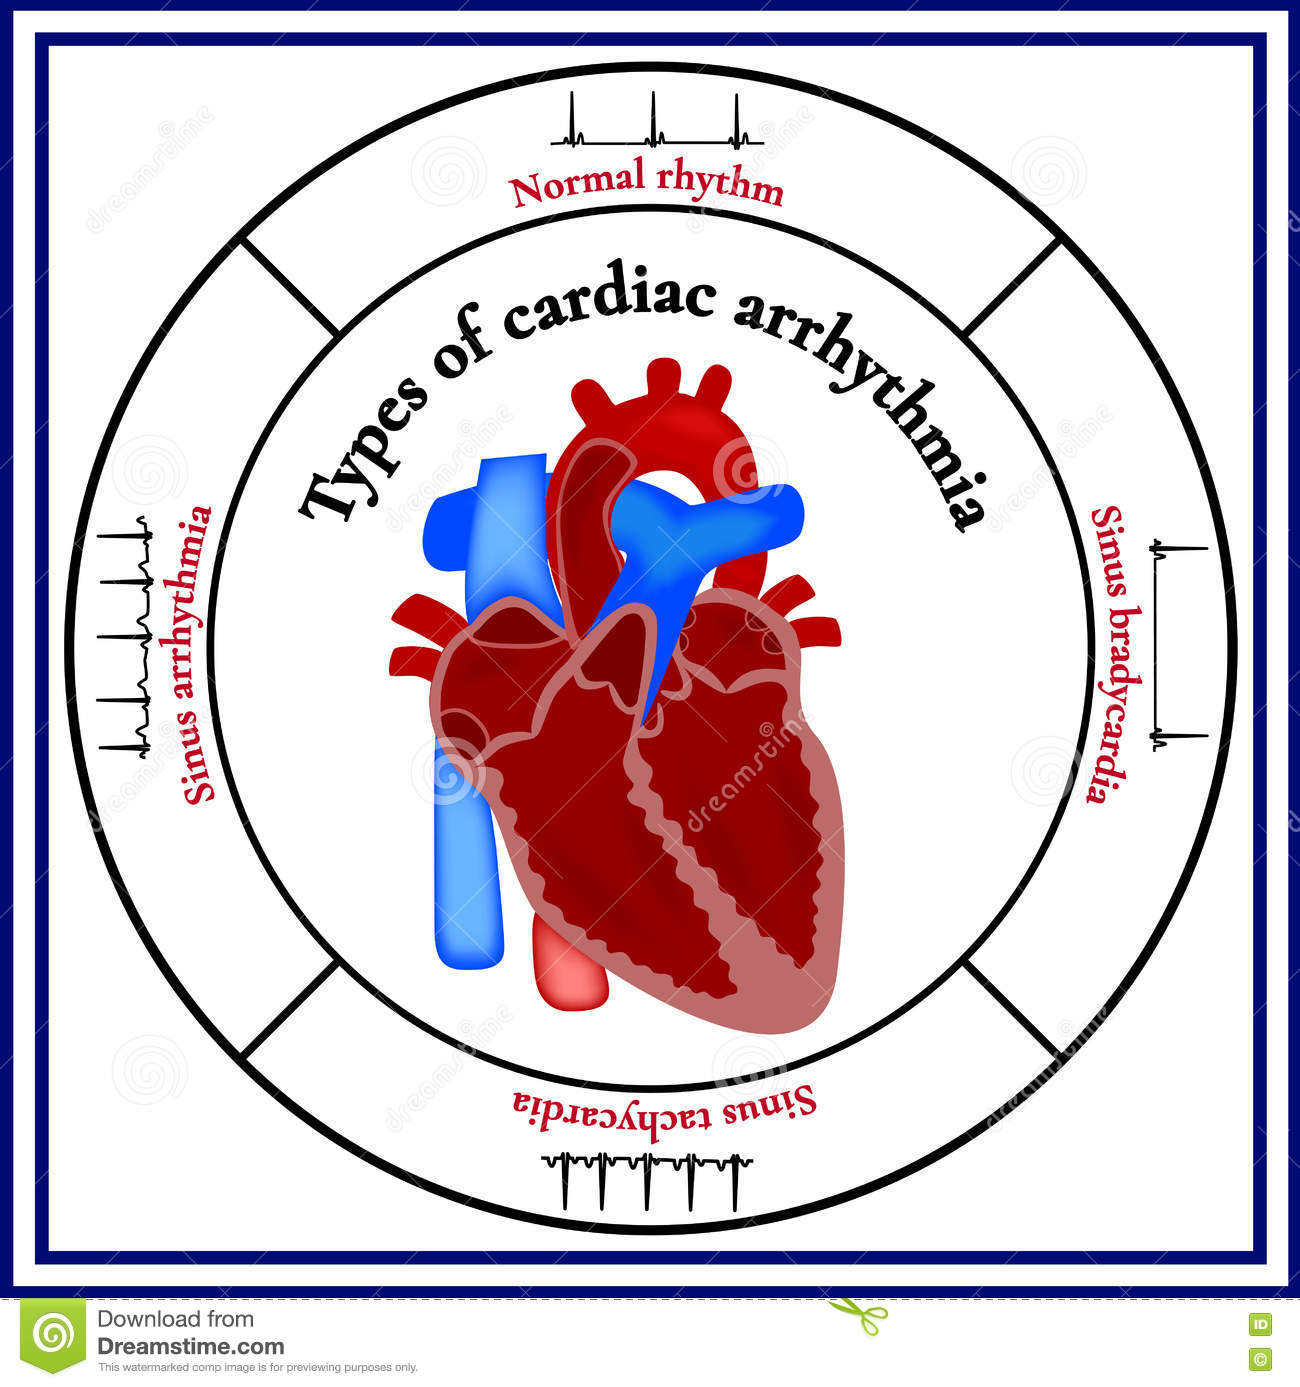 Heart Structure Types Of Cardiac Arrhythmia Stock Vector